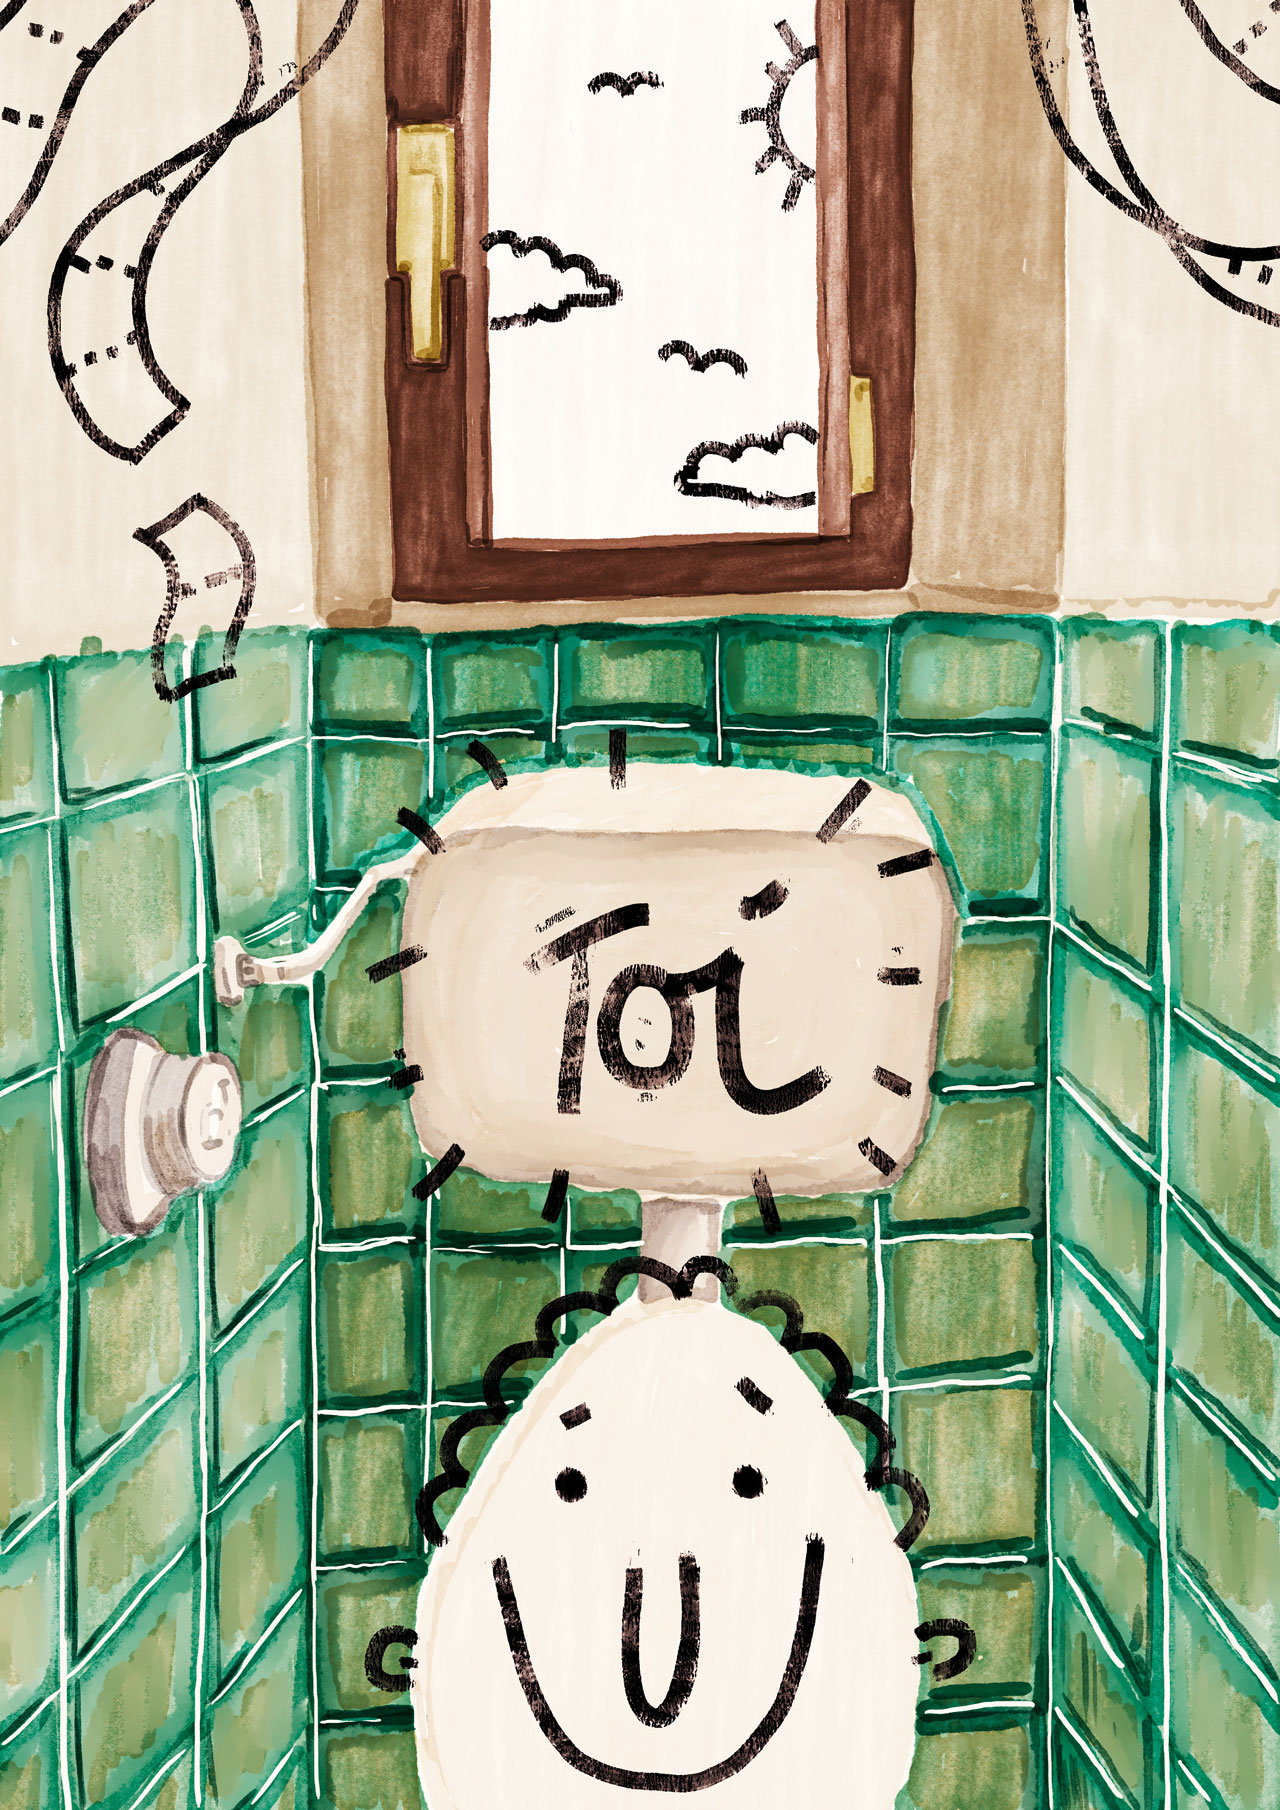 Illustrated toilet space with green tiles and 'toi' written overlay on toilet box